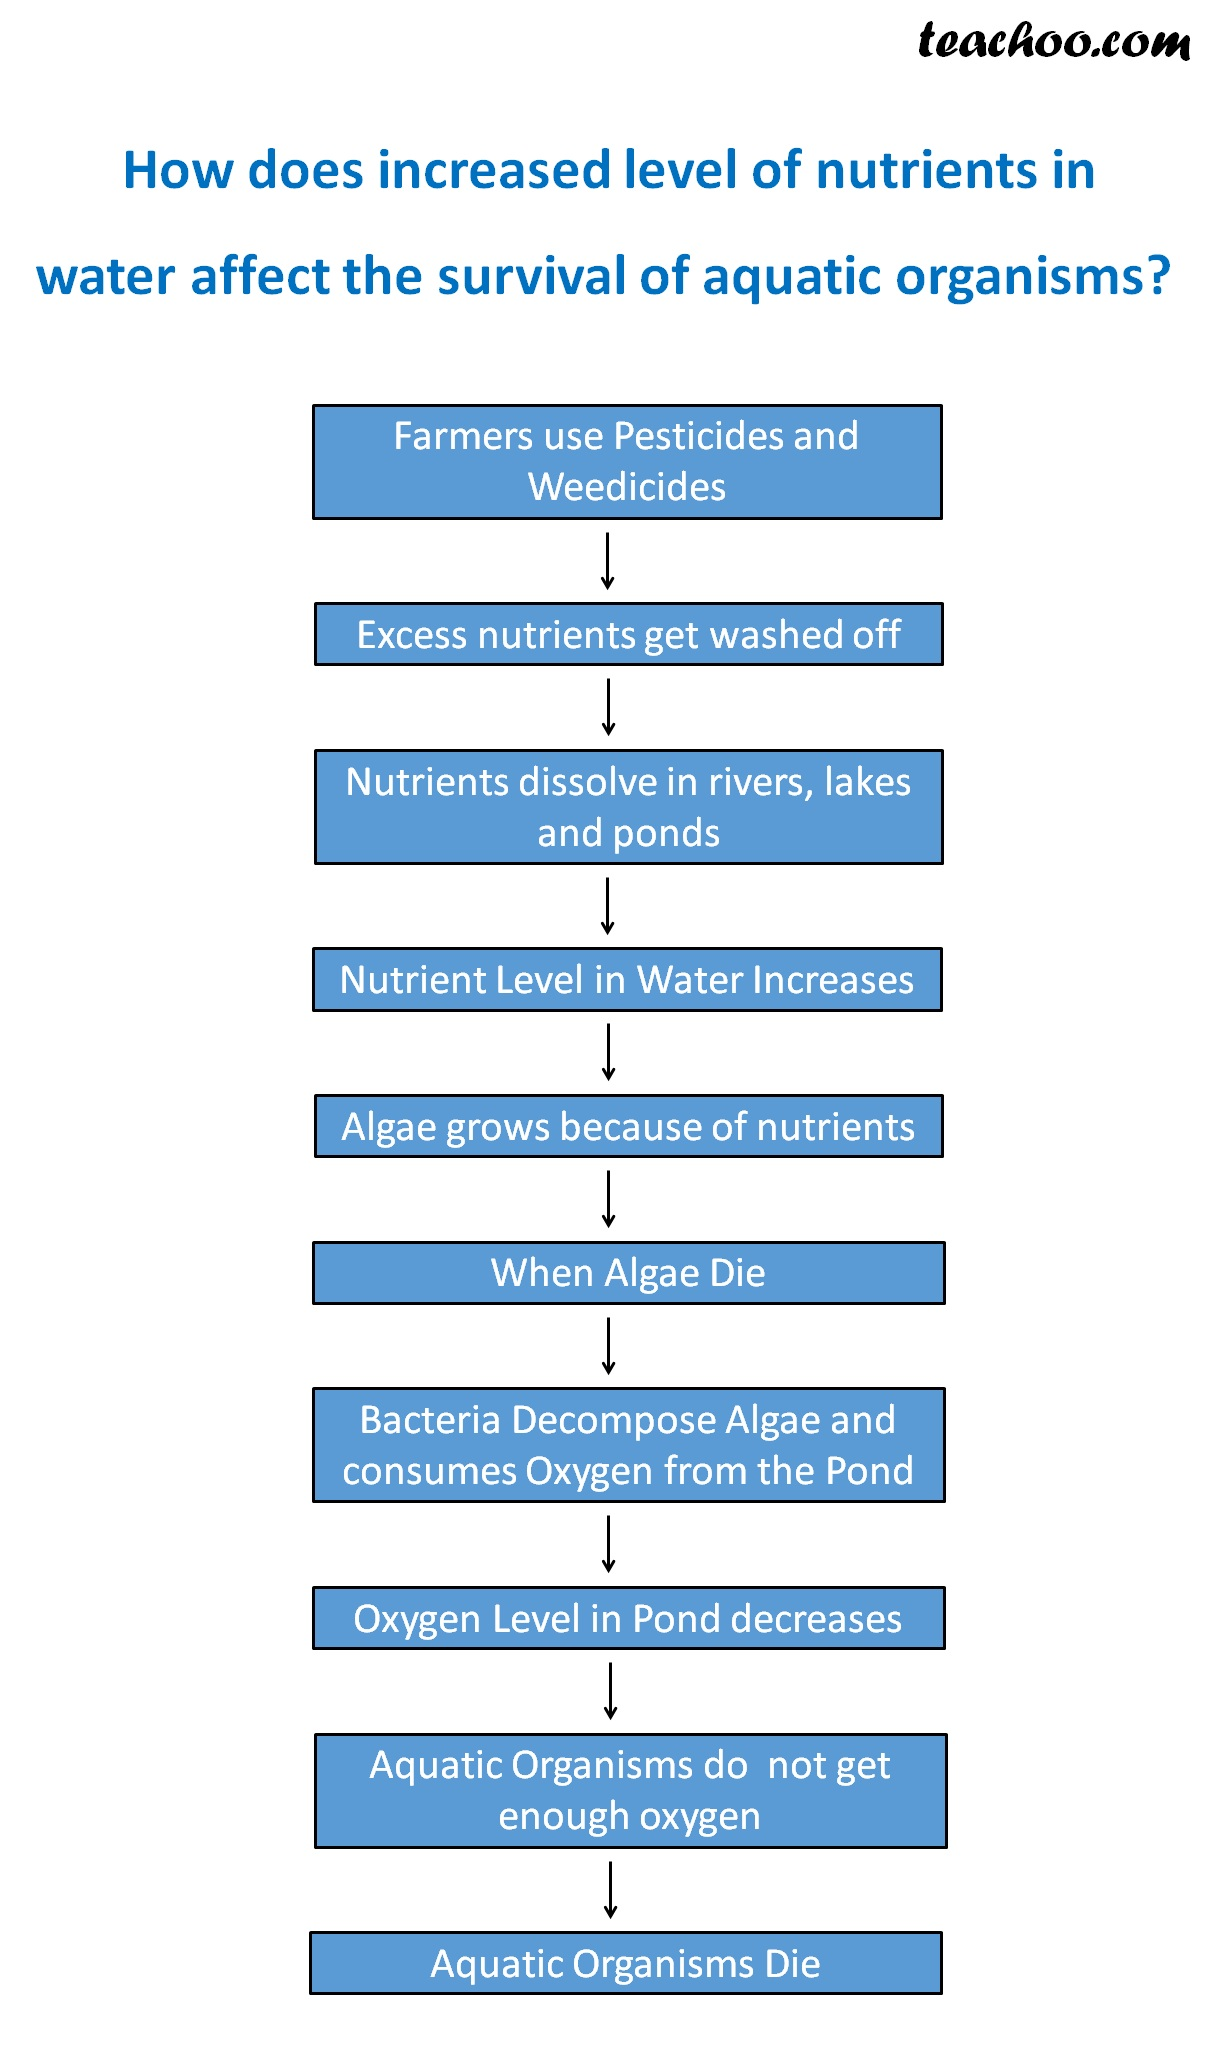 How does increased level of nutrientes in water affect the survival of aquatic organisms - Teachoo.jpg